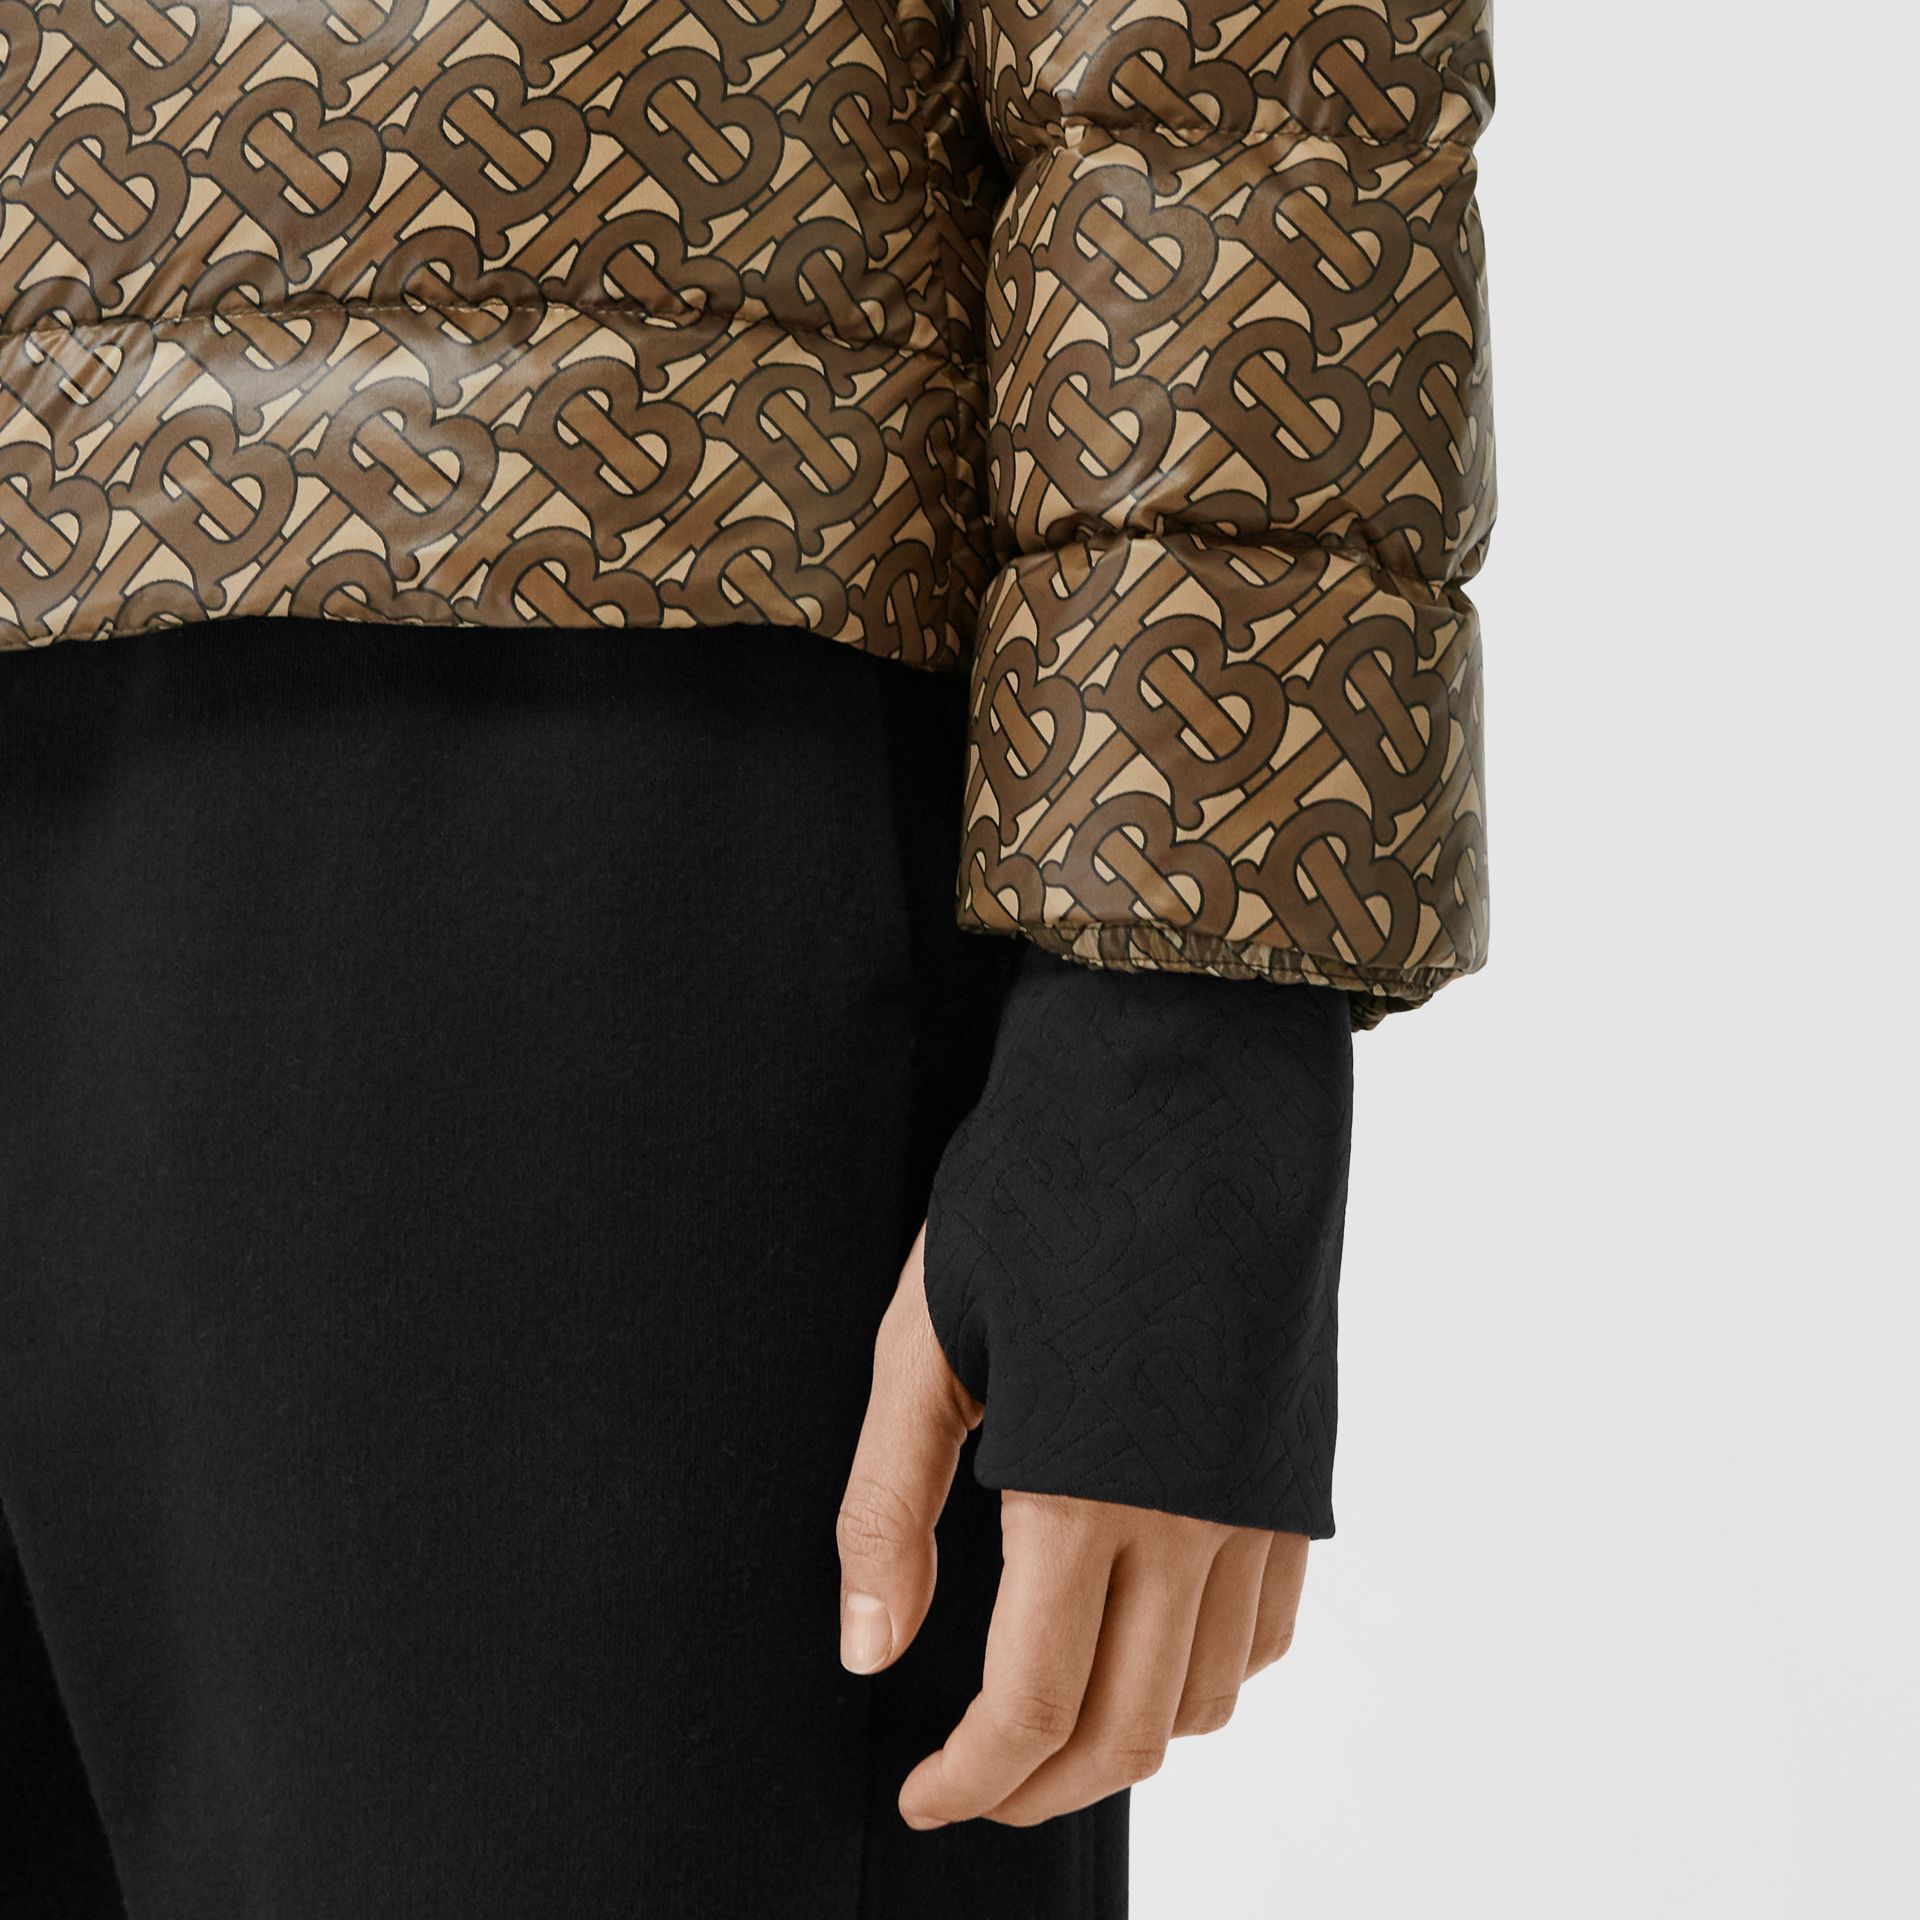 Monogram Print Nylon Puffer Jacket in Bridle Brown - Women | Burberry - gallery image 4